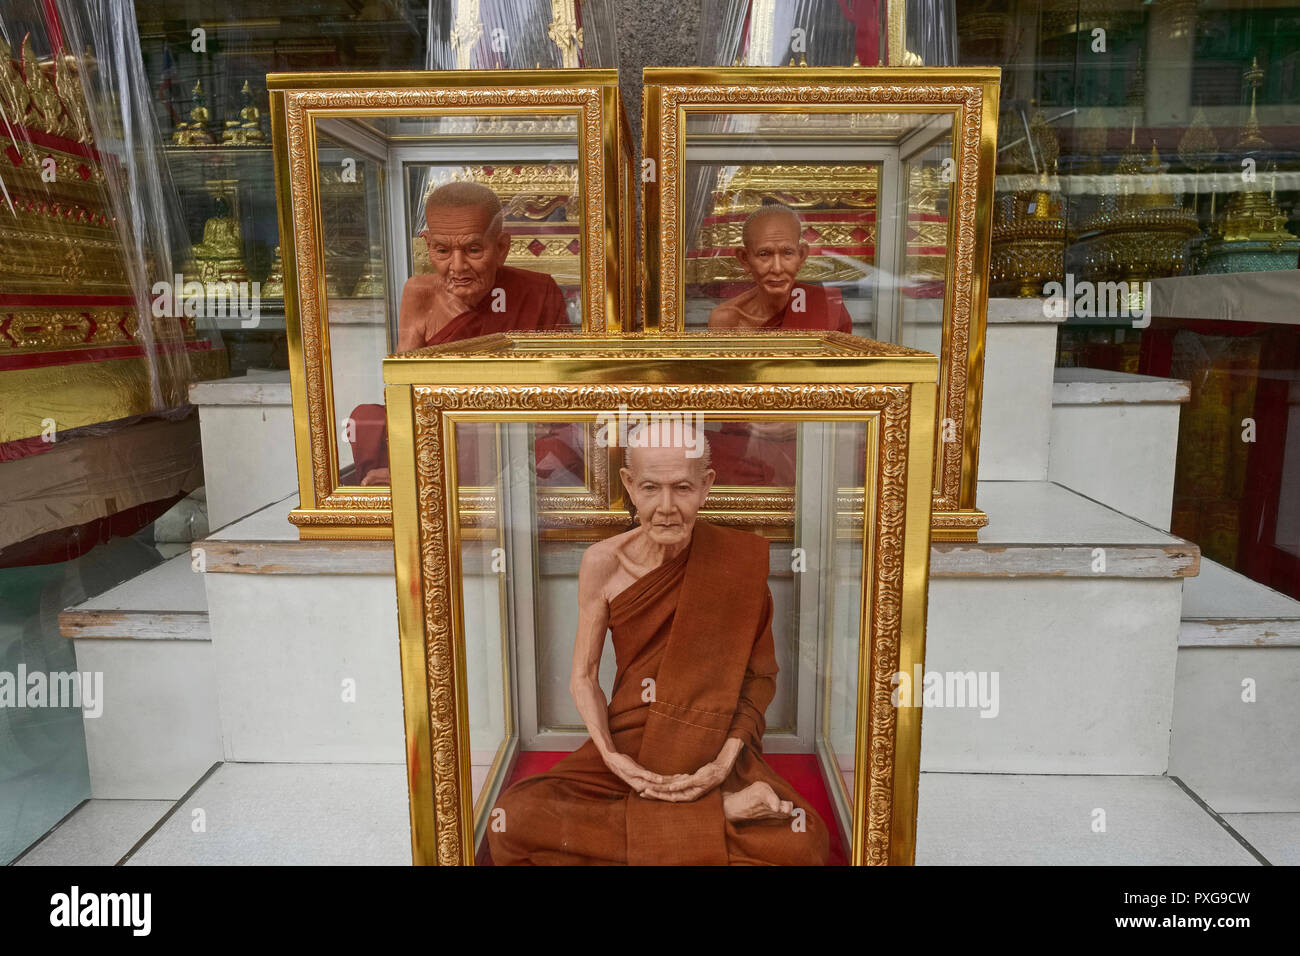 Fibre glass miniatures of revered Thai monks - or Luang Pu - in gold-rimmed glass cases, on sale in Bamrung Muang Rd., Bangkok, Thailand - Stock Image